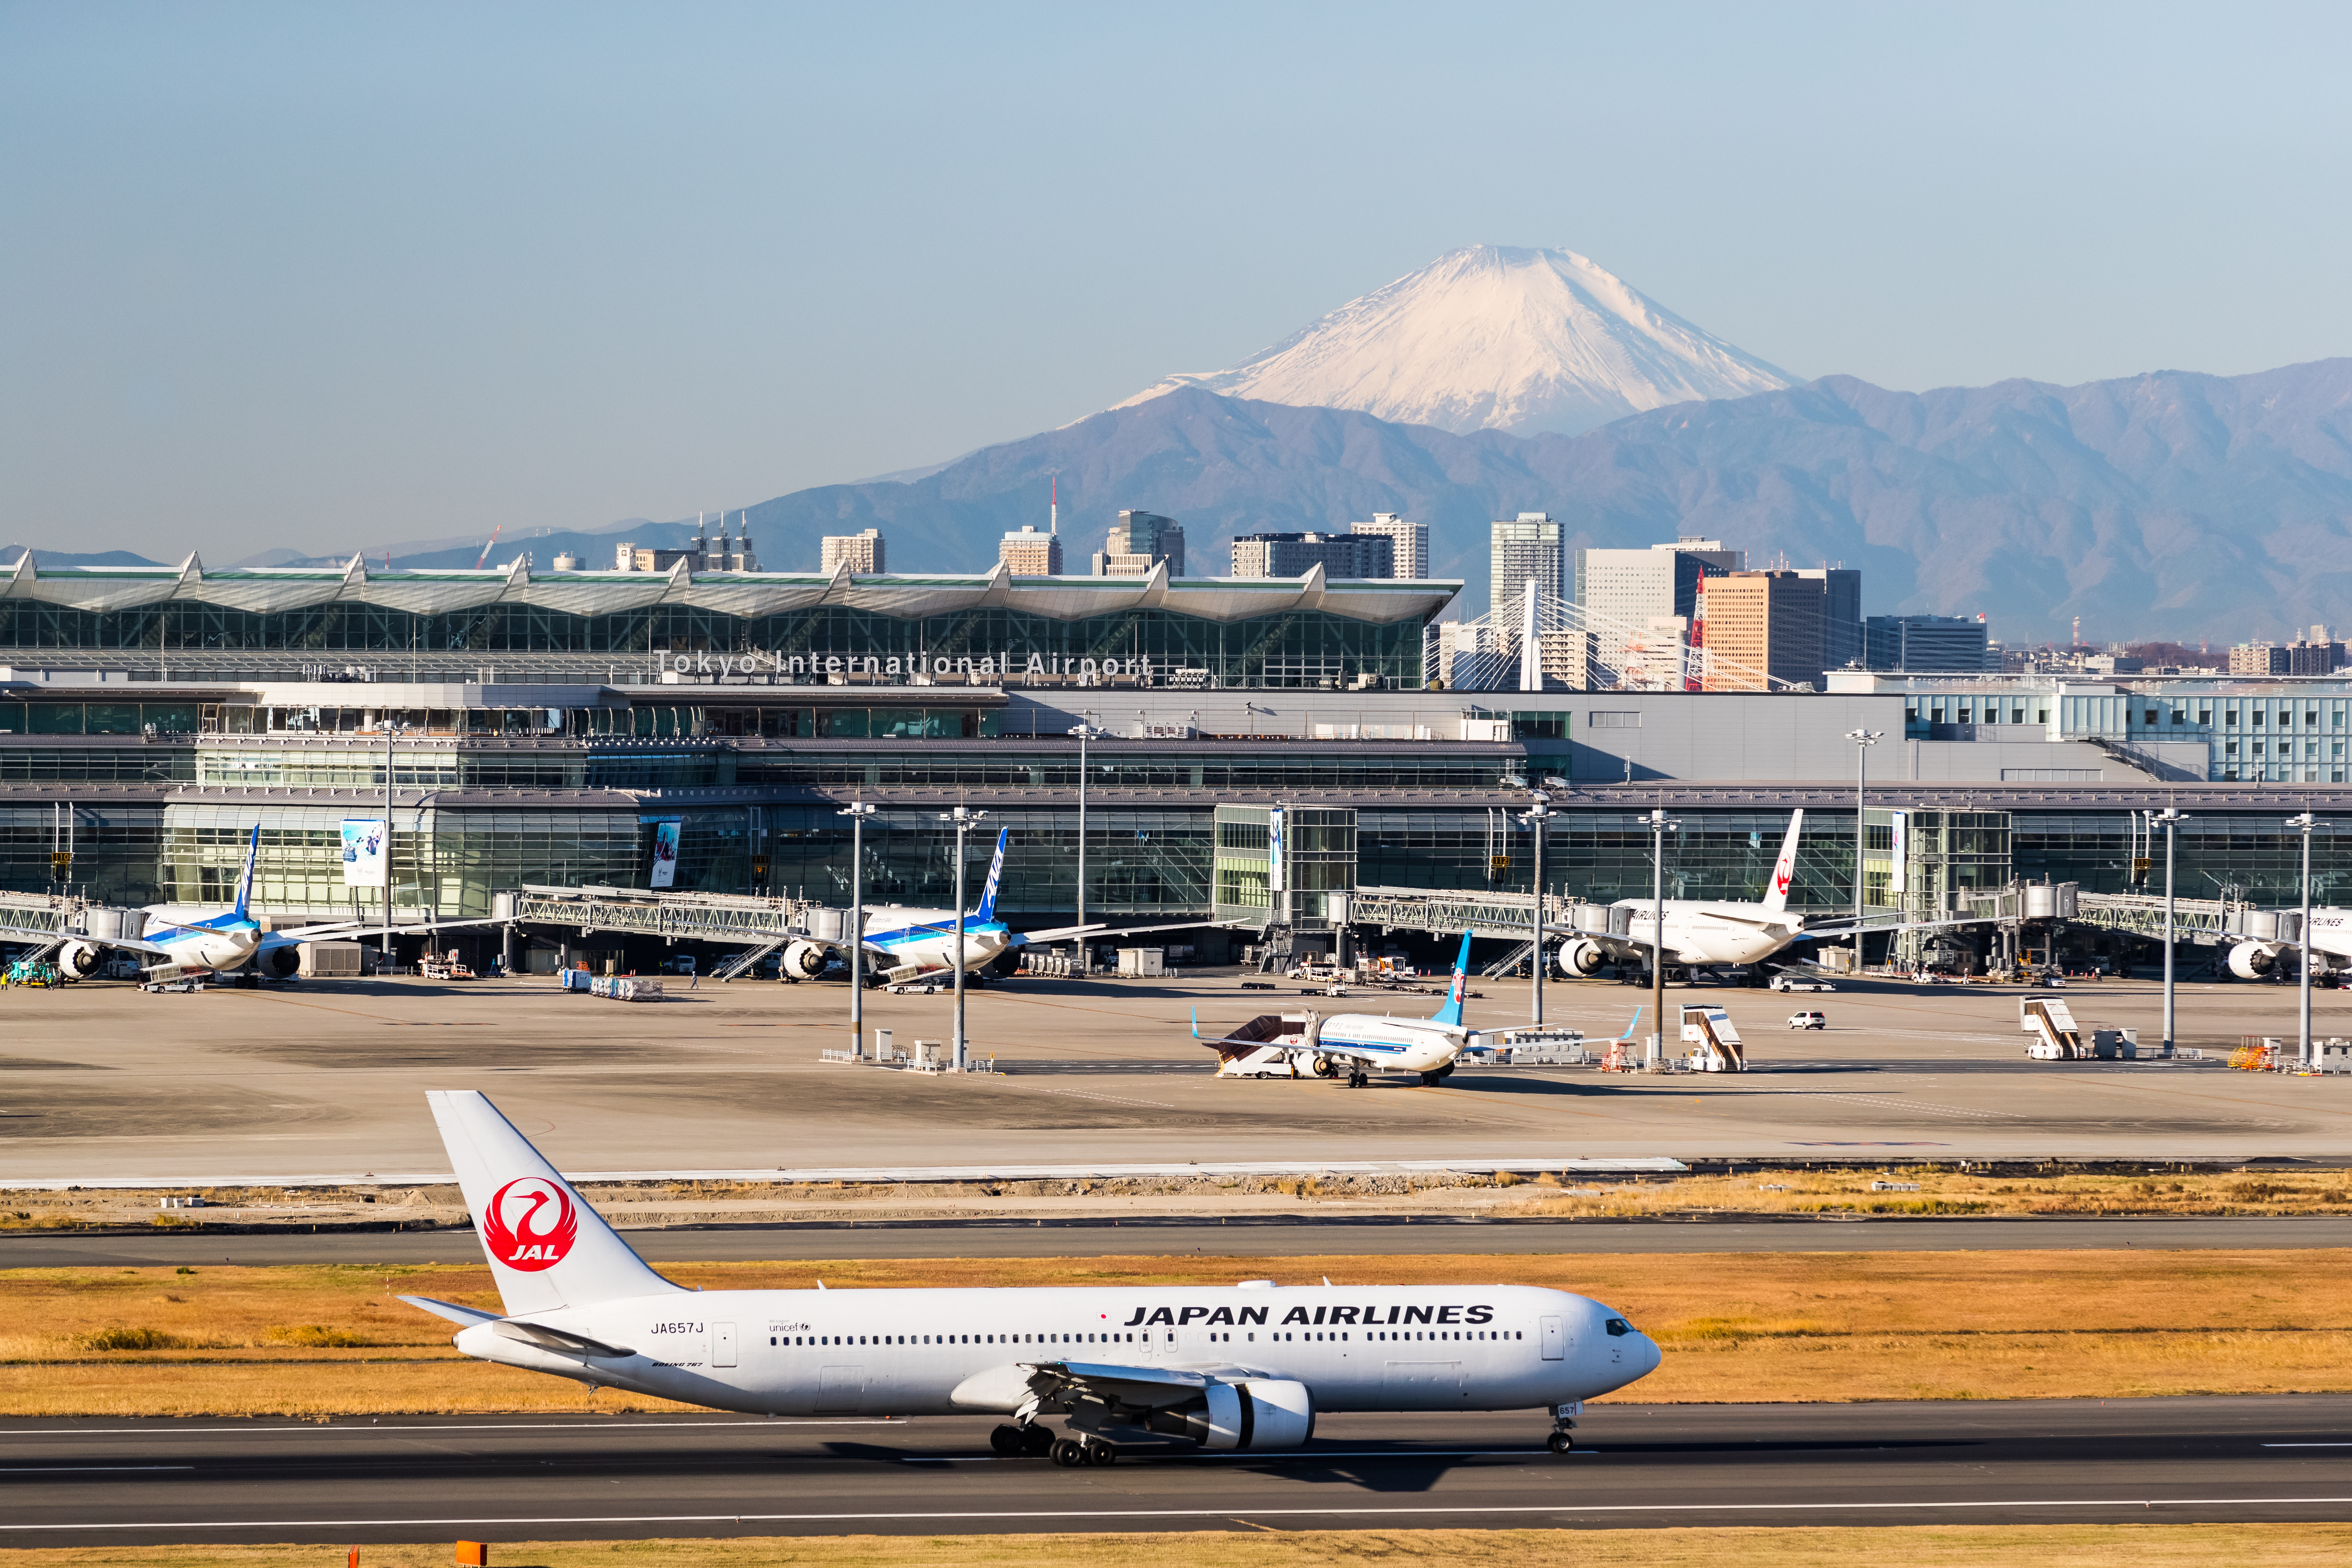 Haneda Airport and Mount Fuji on a clear day, Tokyo, Japan, December 14, 2017.